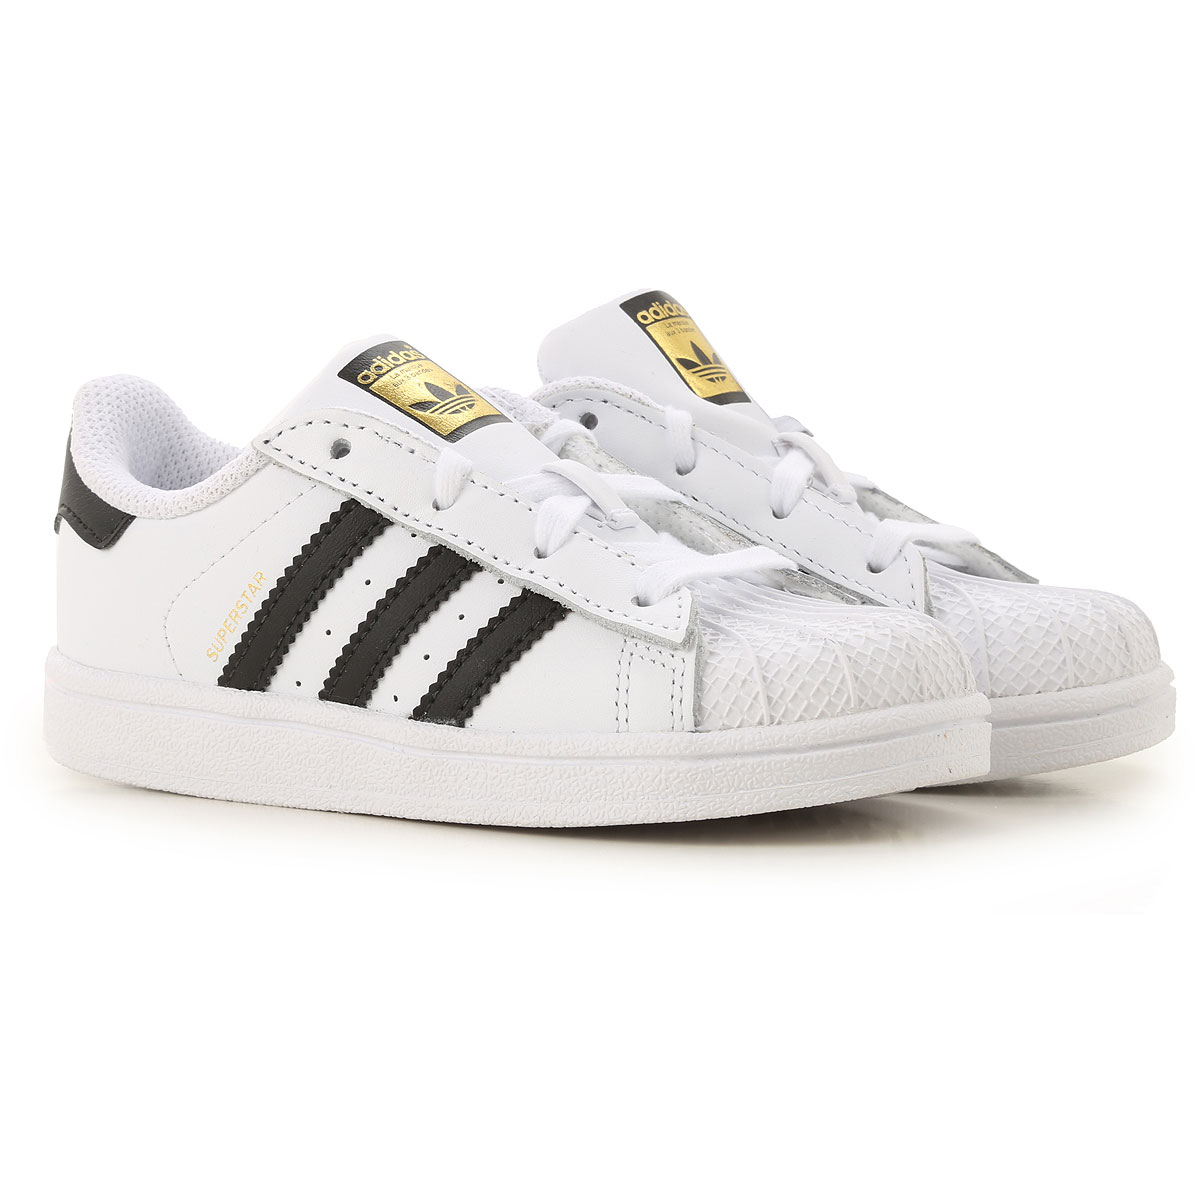 Adidas Kids Shoes for Boys On Sale, White, Leather, 2019, 22 27